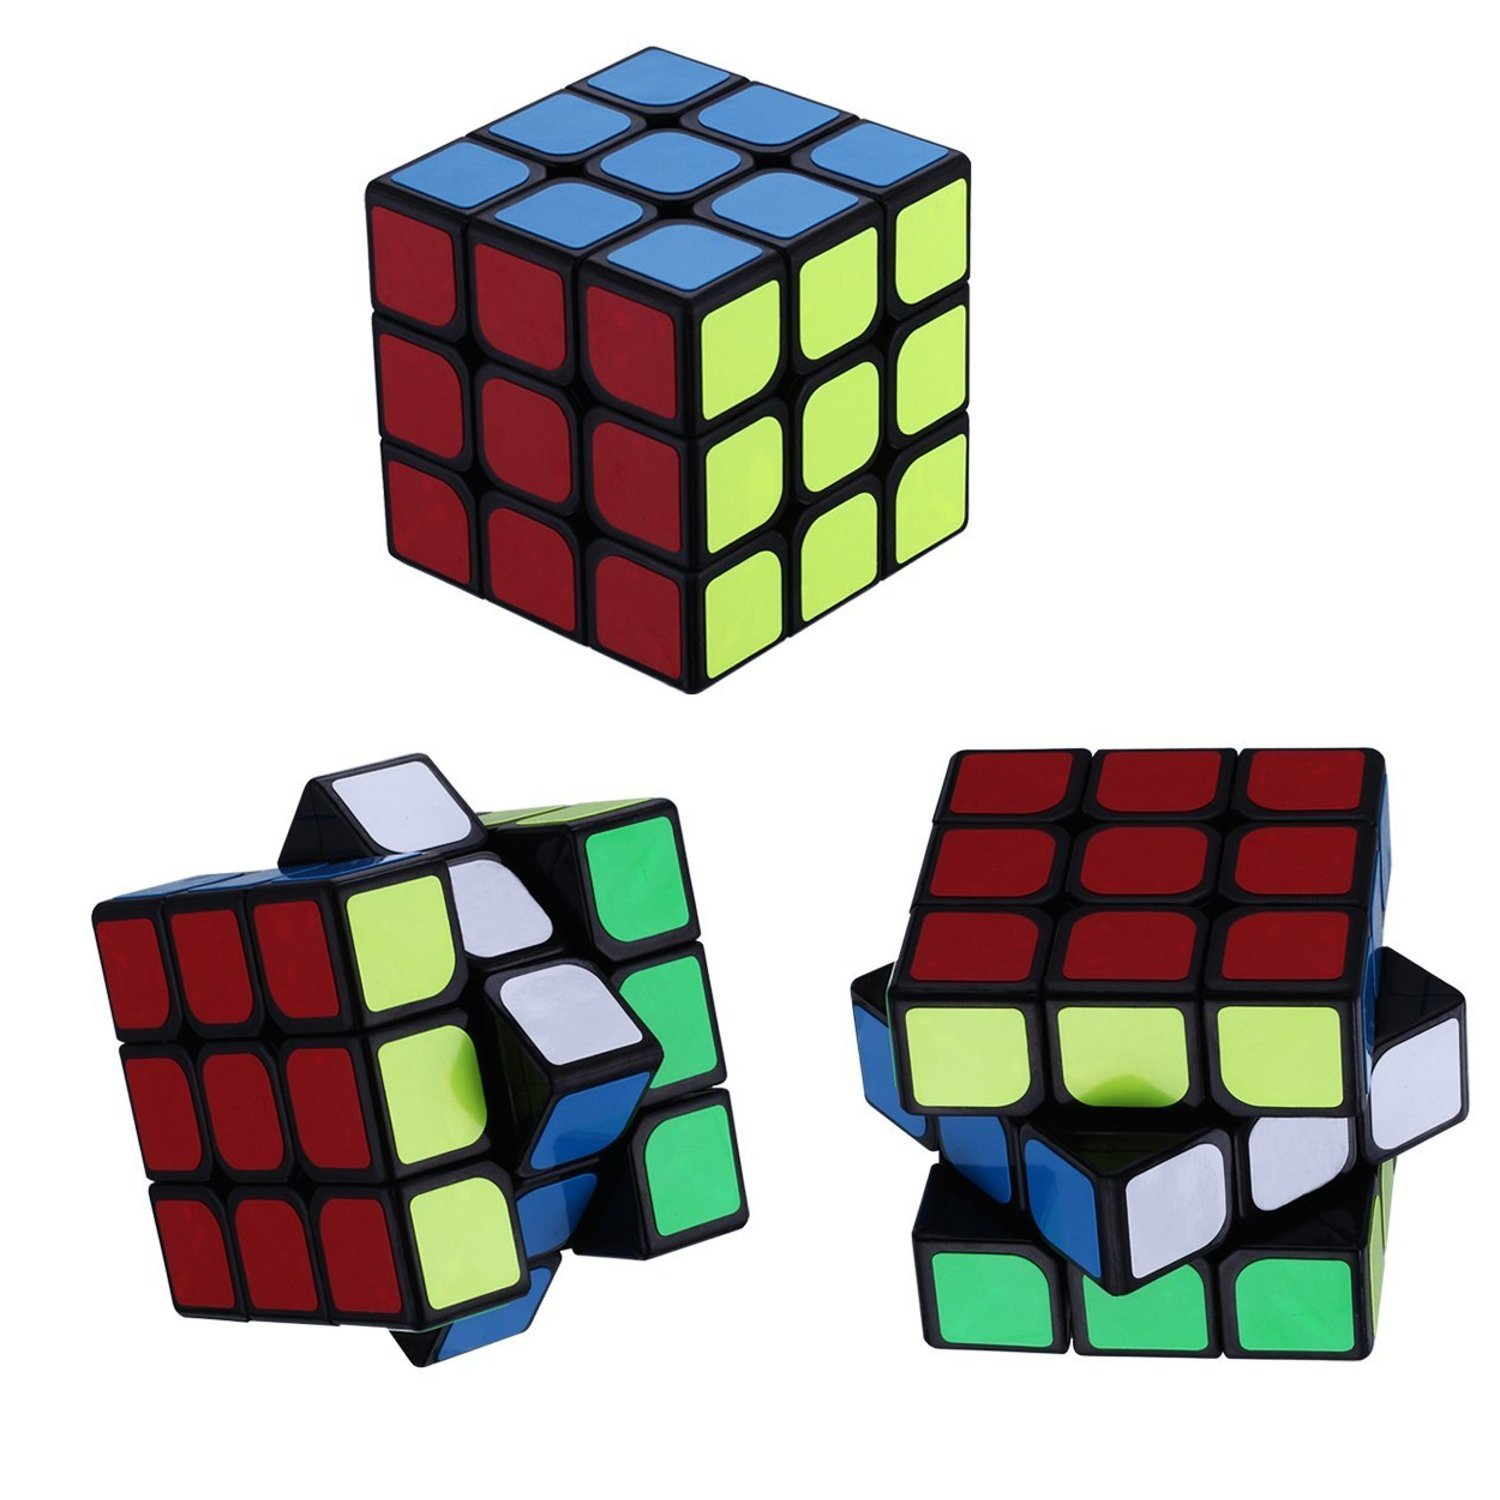 Squaad Speed Cube Set 2X2X2 3X3X3 4X4X4 5X5x5 Speed Cube Bundle of 4 pack 3-d puzzle cube Great Brain Teasing Toys For Adult And Kids Kirpa creation